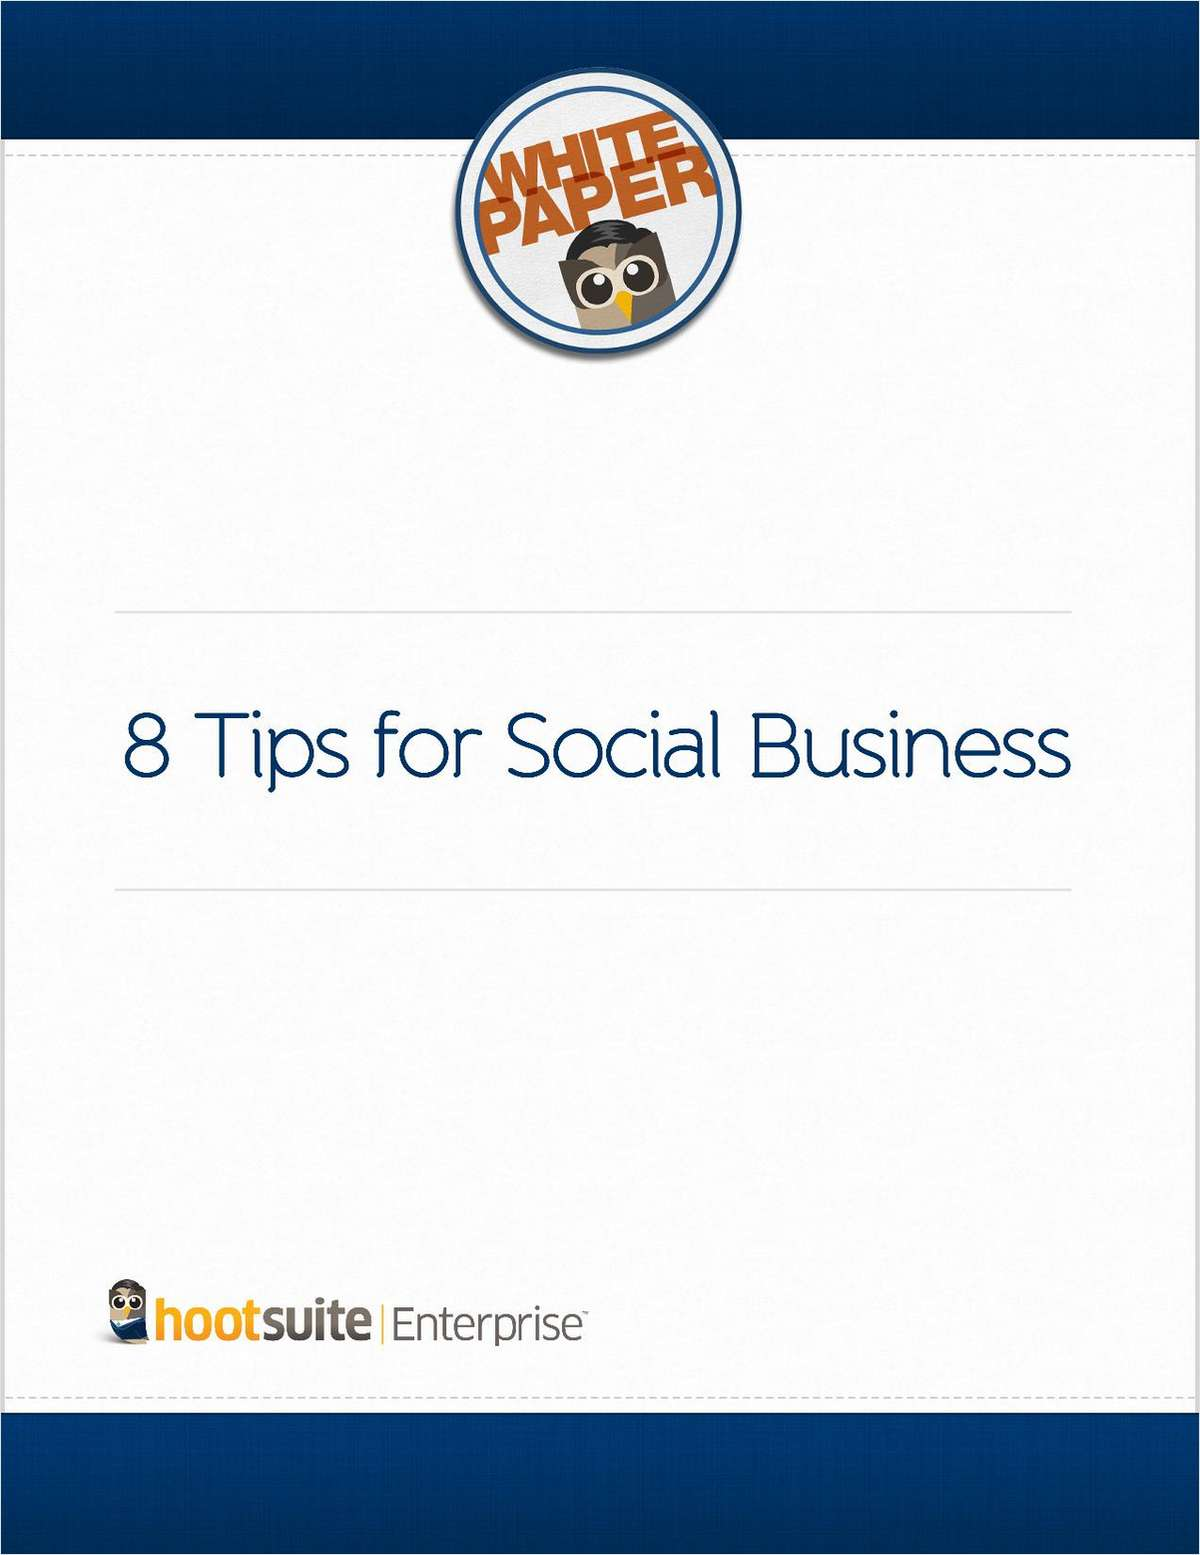 8 Tips for Social Business